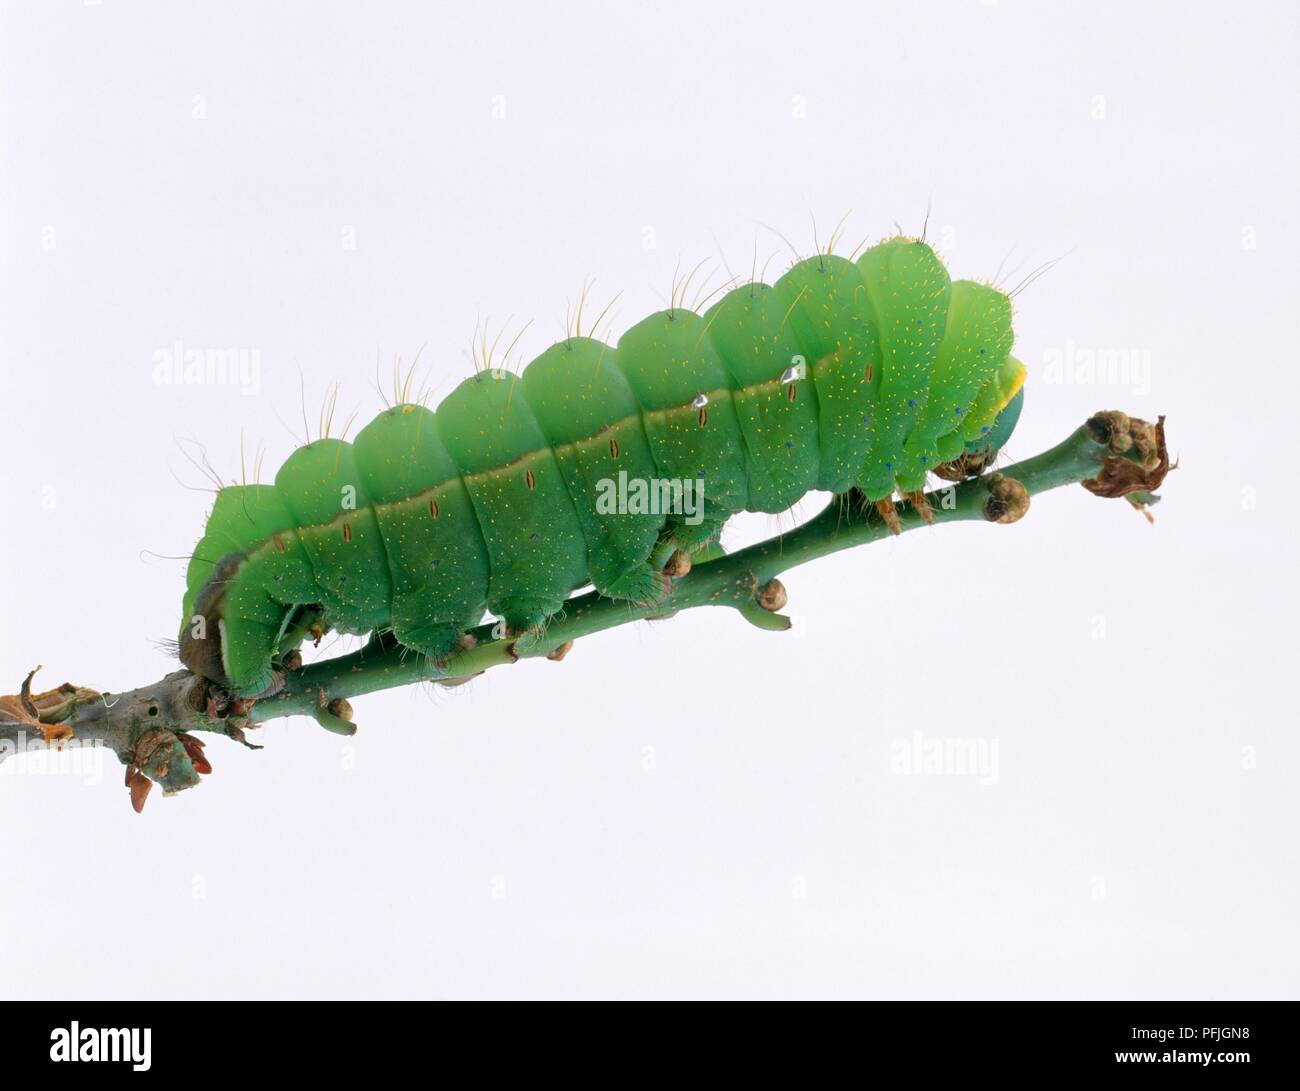 Chinese oak silk moth (Antheraea pernyi) caterpillar on stem Stock Photo